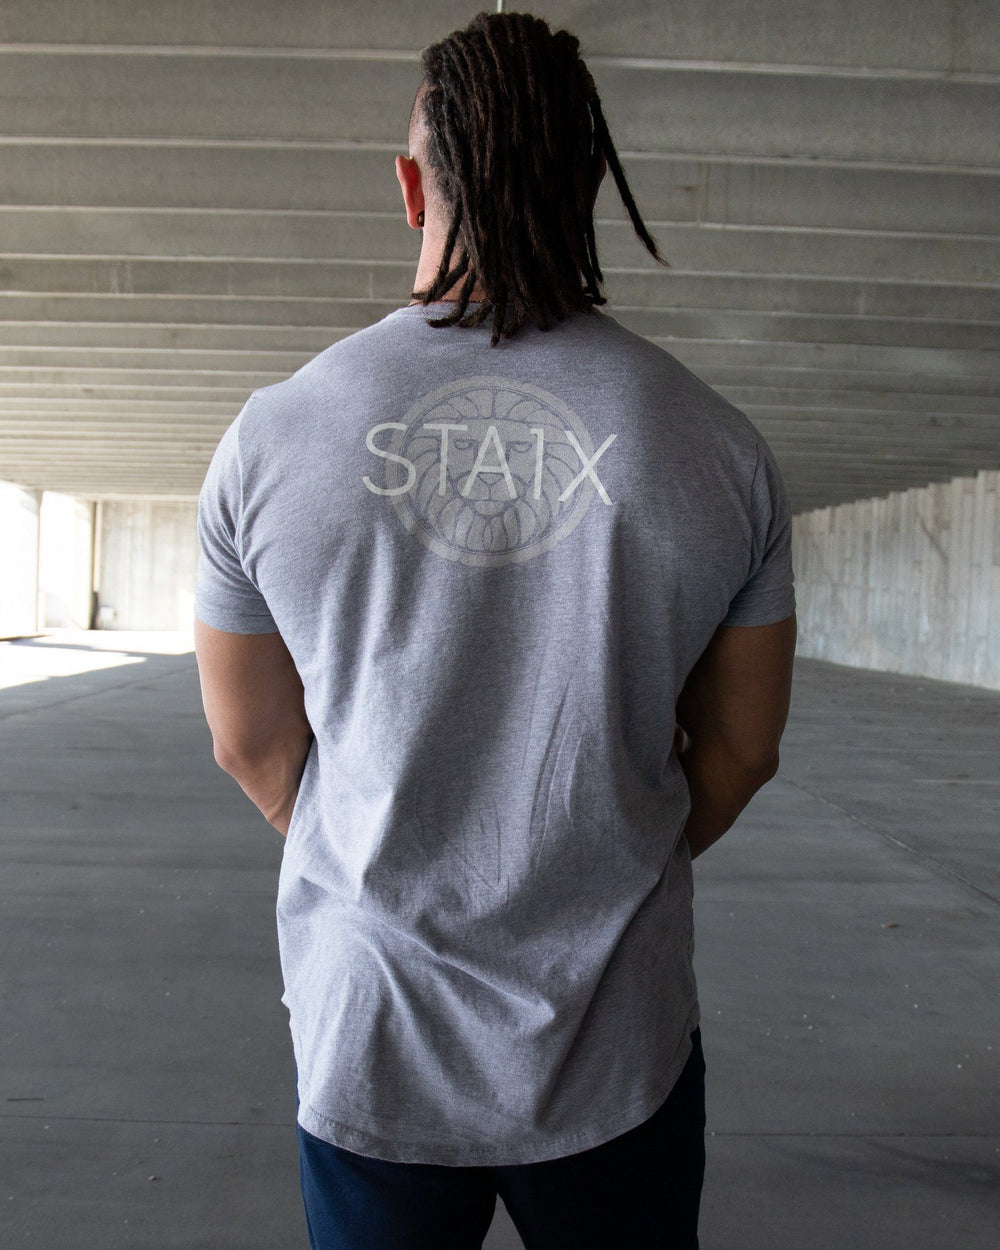 Scoop Flag Tee - Gray Men's STAIX Tee STAIX